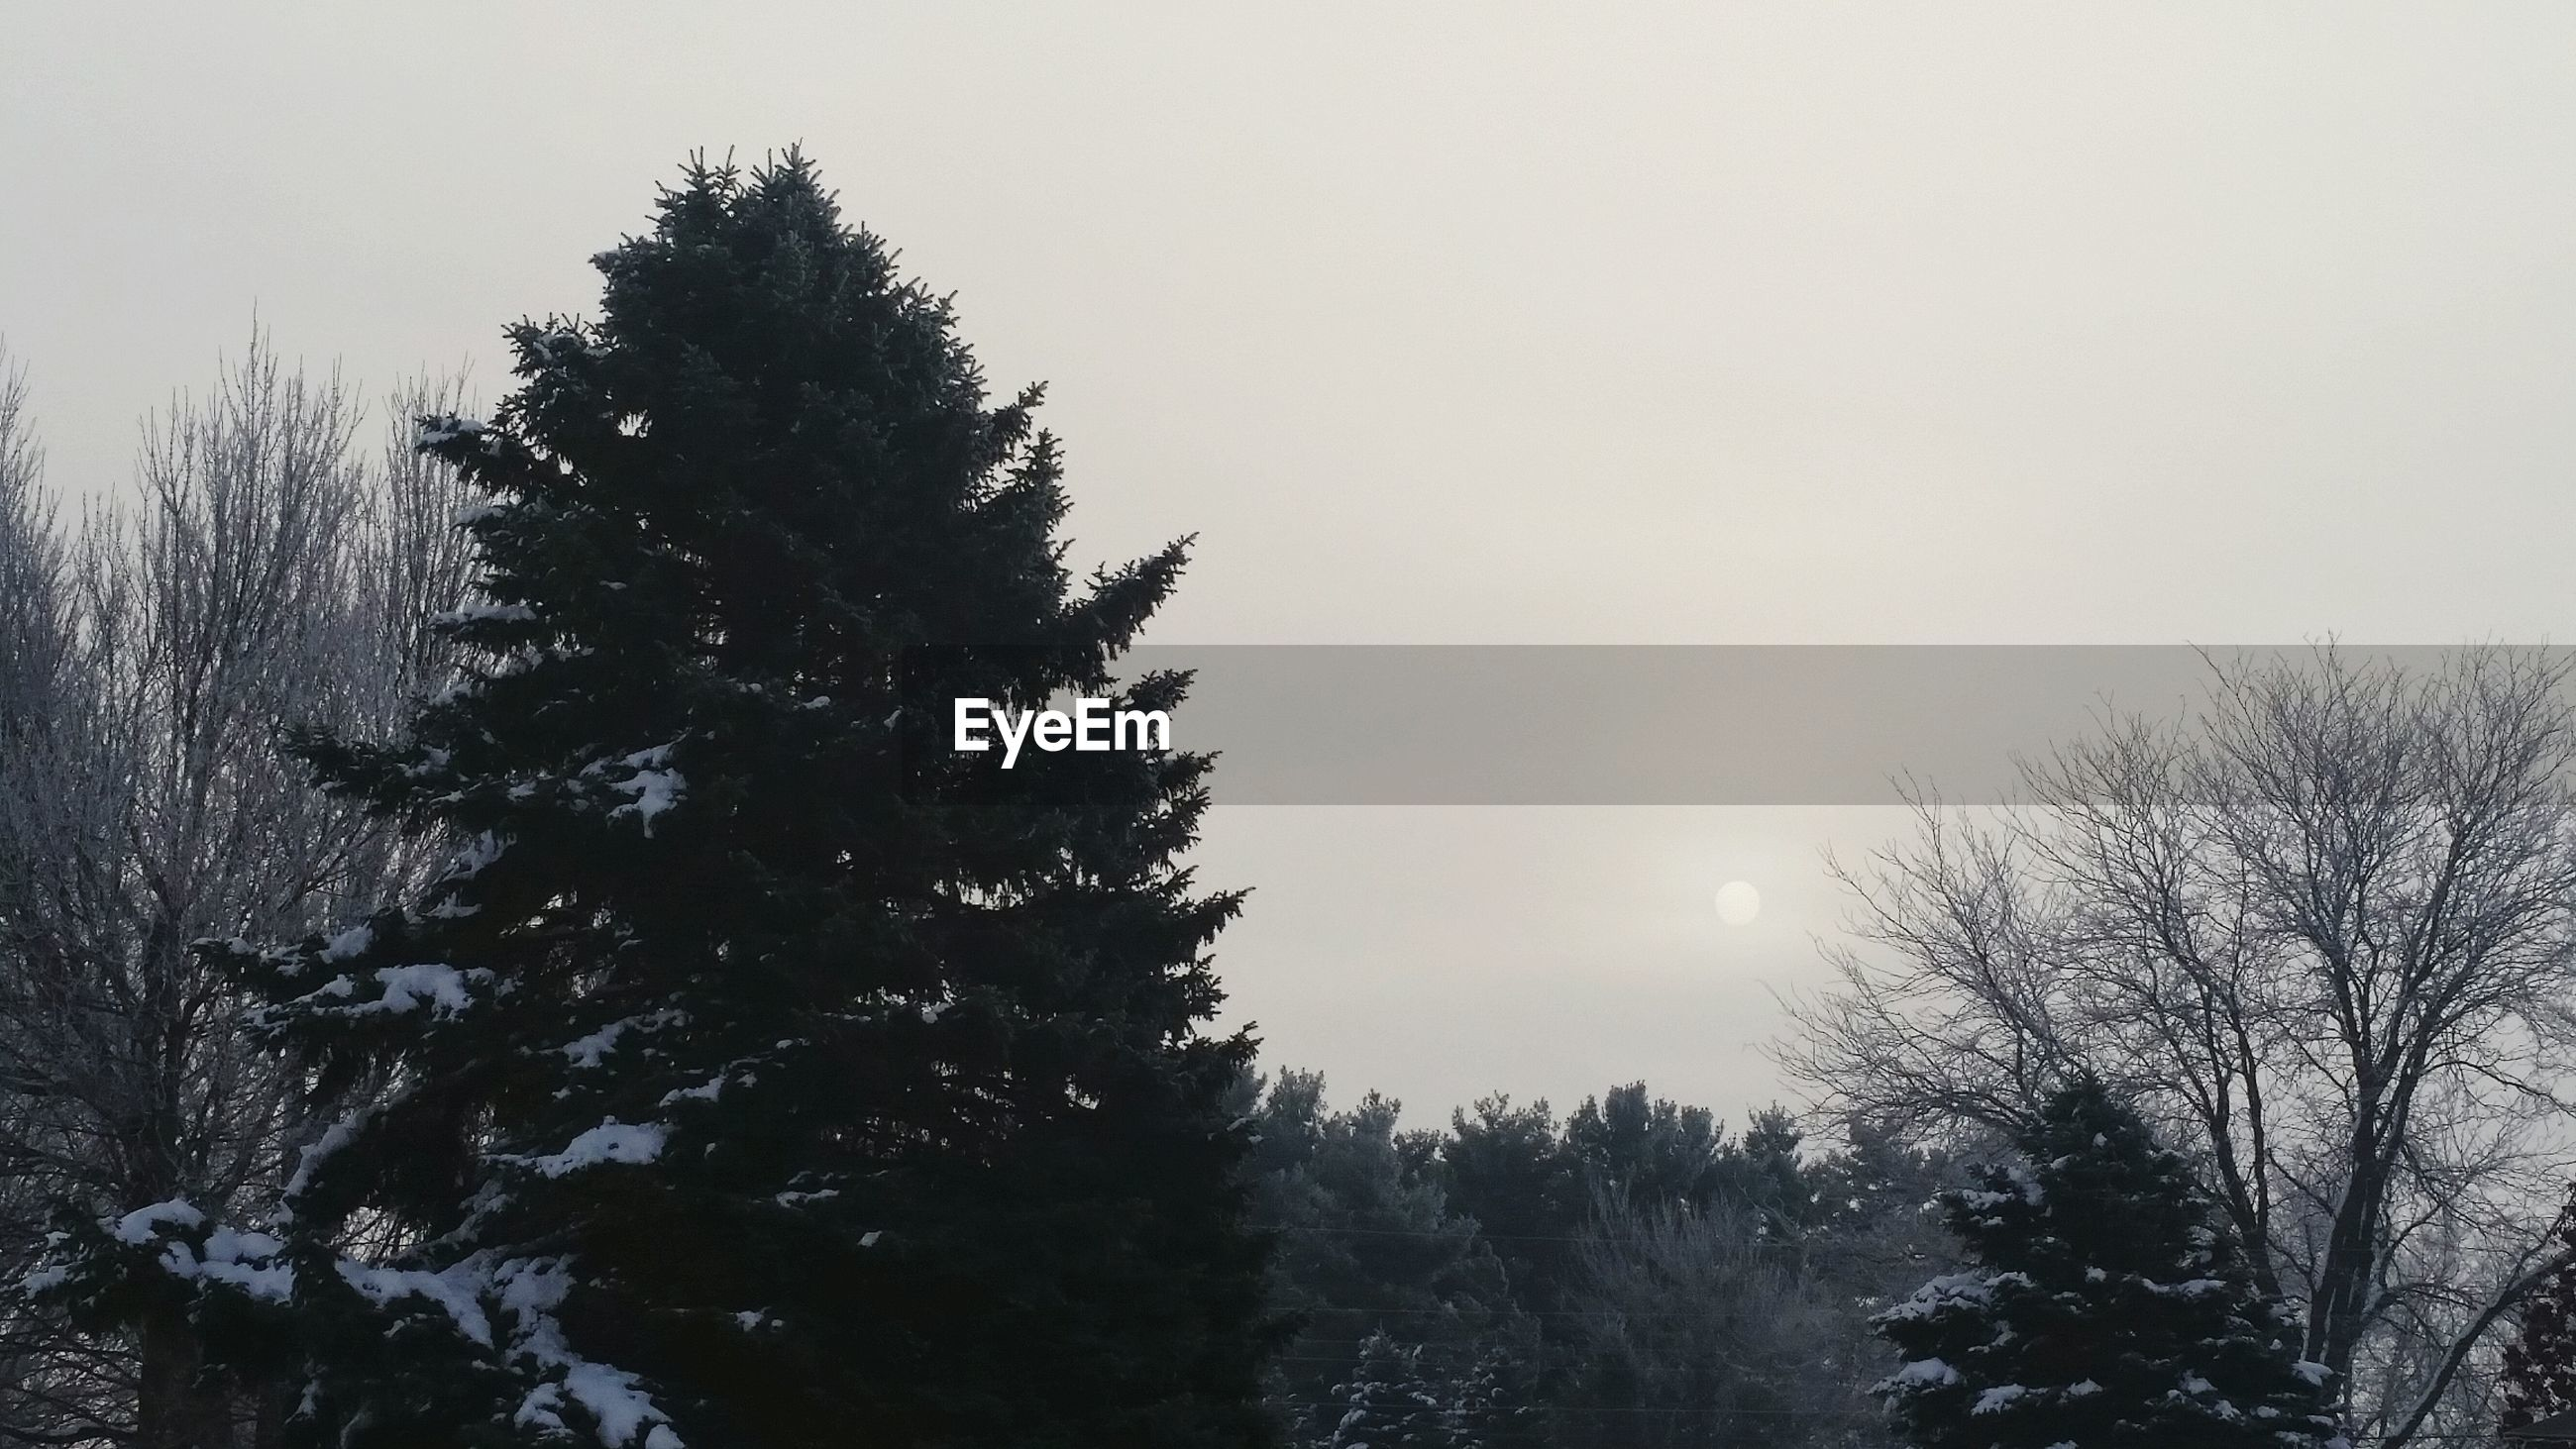 Trees with snow against sky during winter